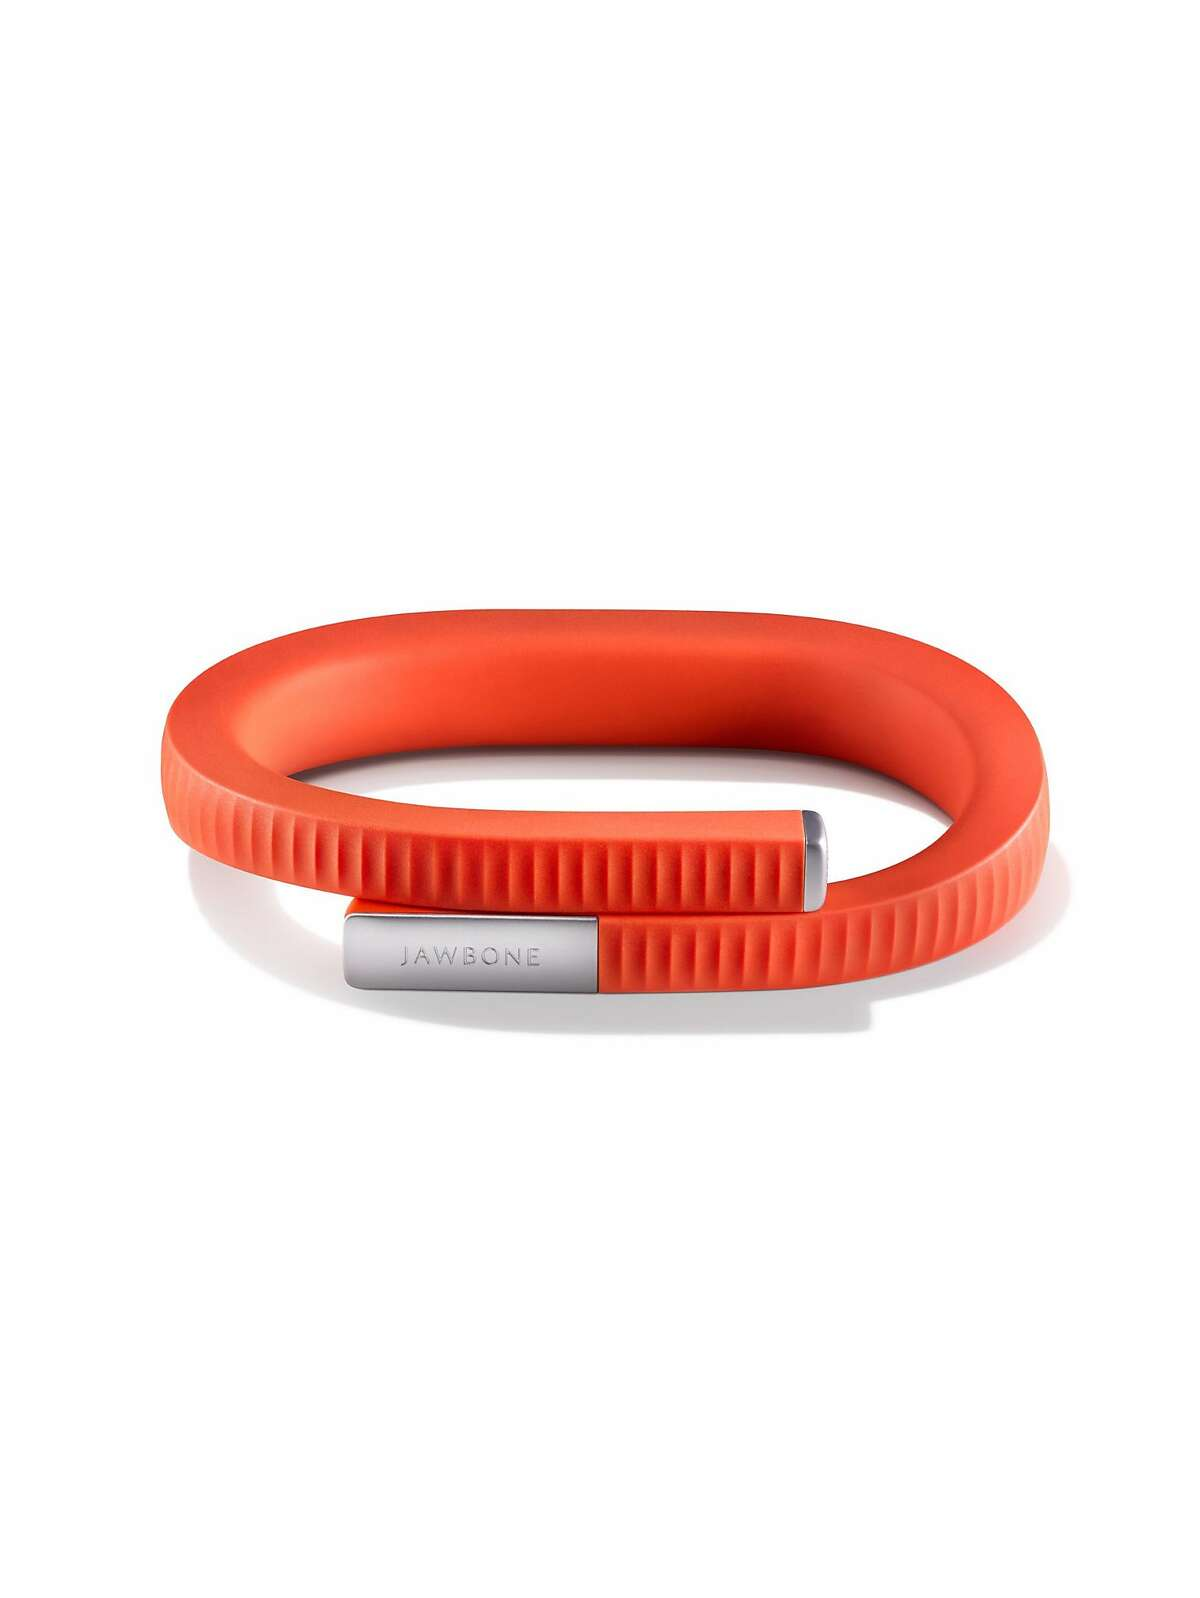 Jawbone UP24 retails for 149.99. It connects to your smartphone tracking your sleep, movement and eating habits.